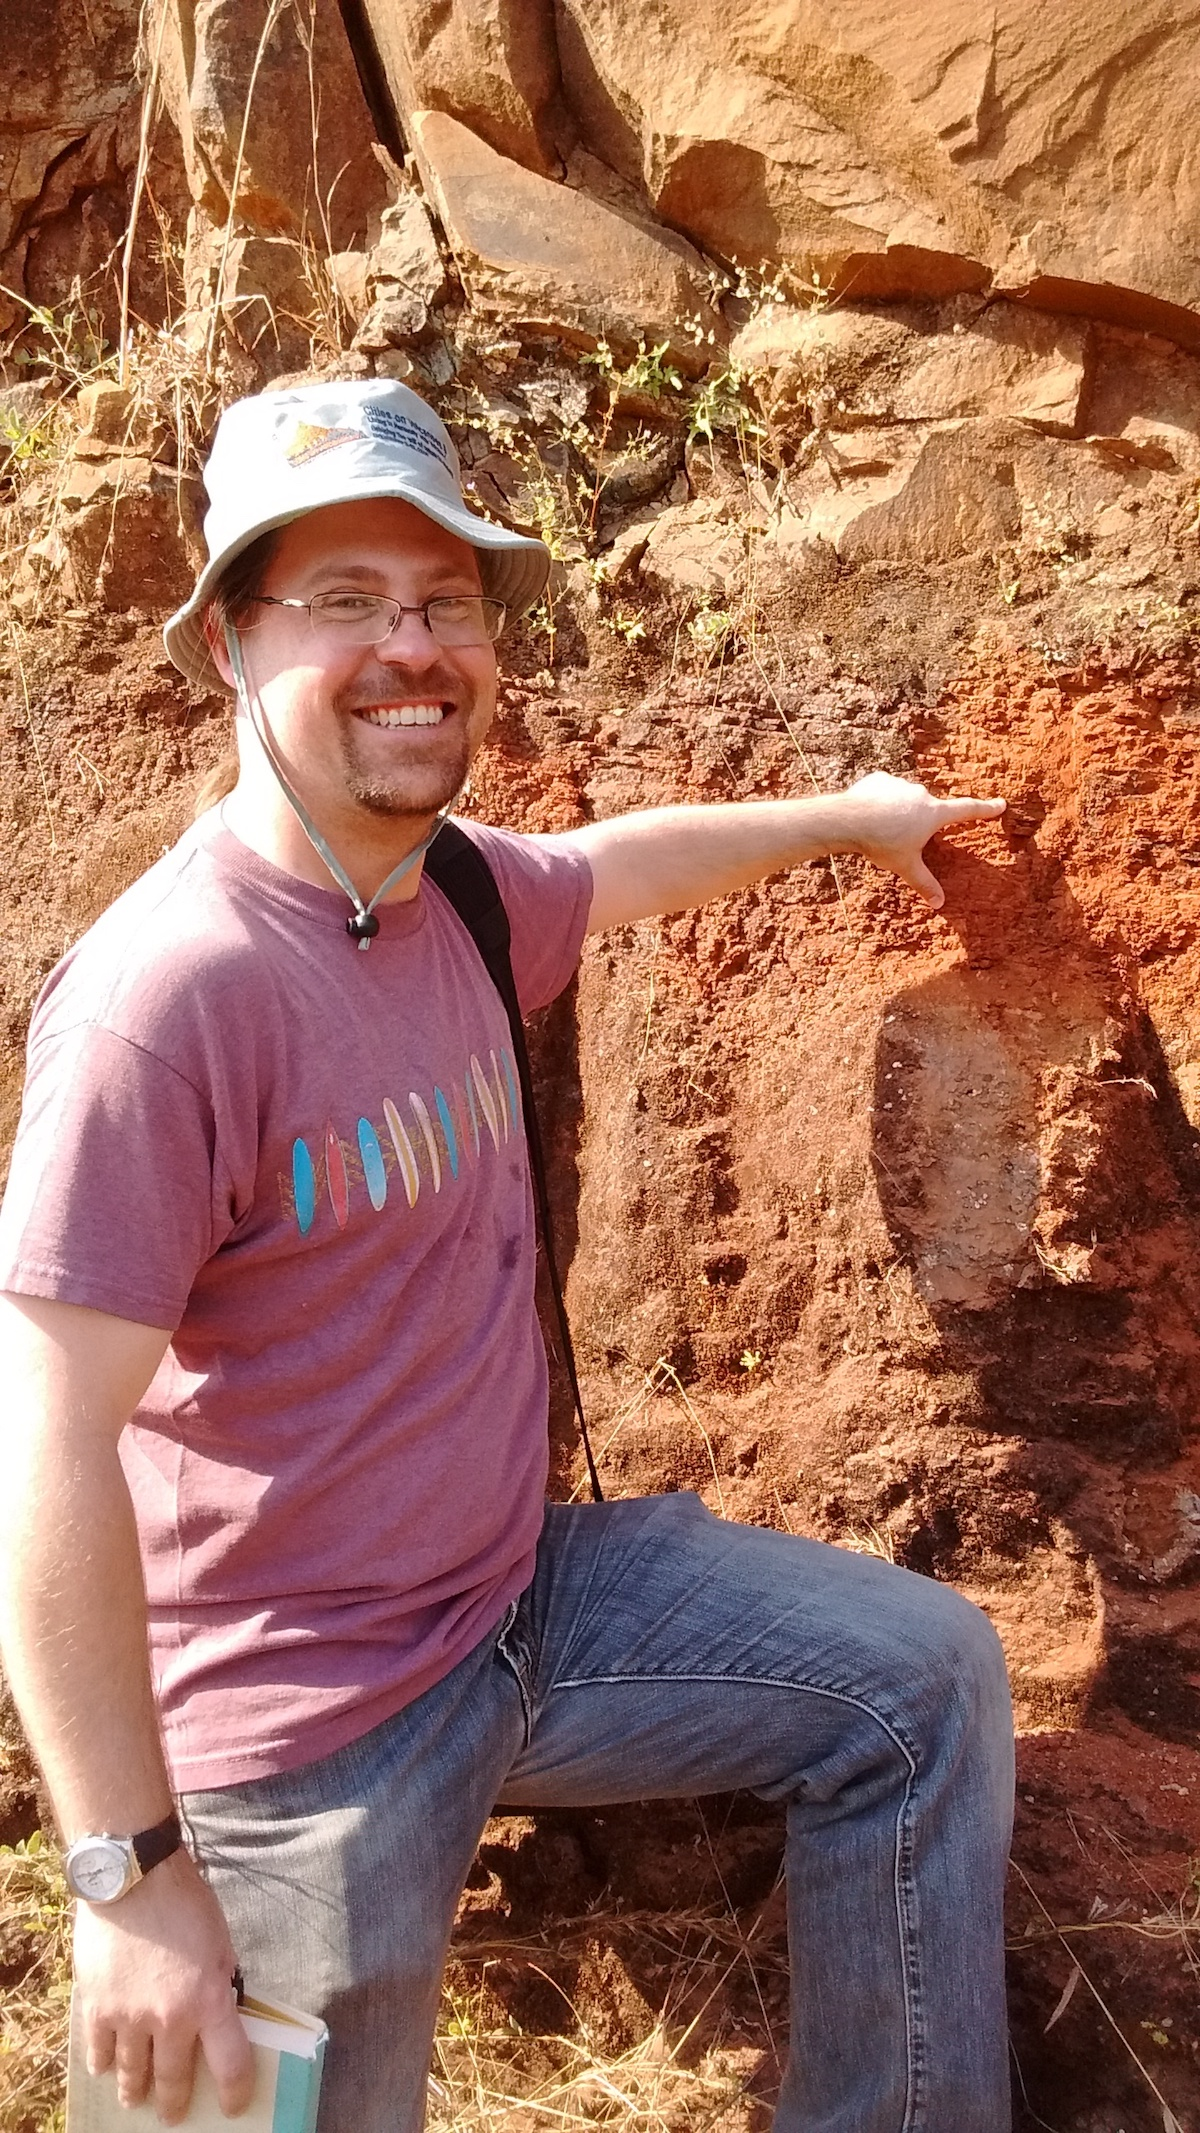 Vanderkluysen points at a red bole that marks the Bushe-Poladpur contact/Cretaceous-Paleogene boundary near the town of Poladpur in the Western Ghats. Image credit, Courtney Sprain.